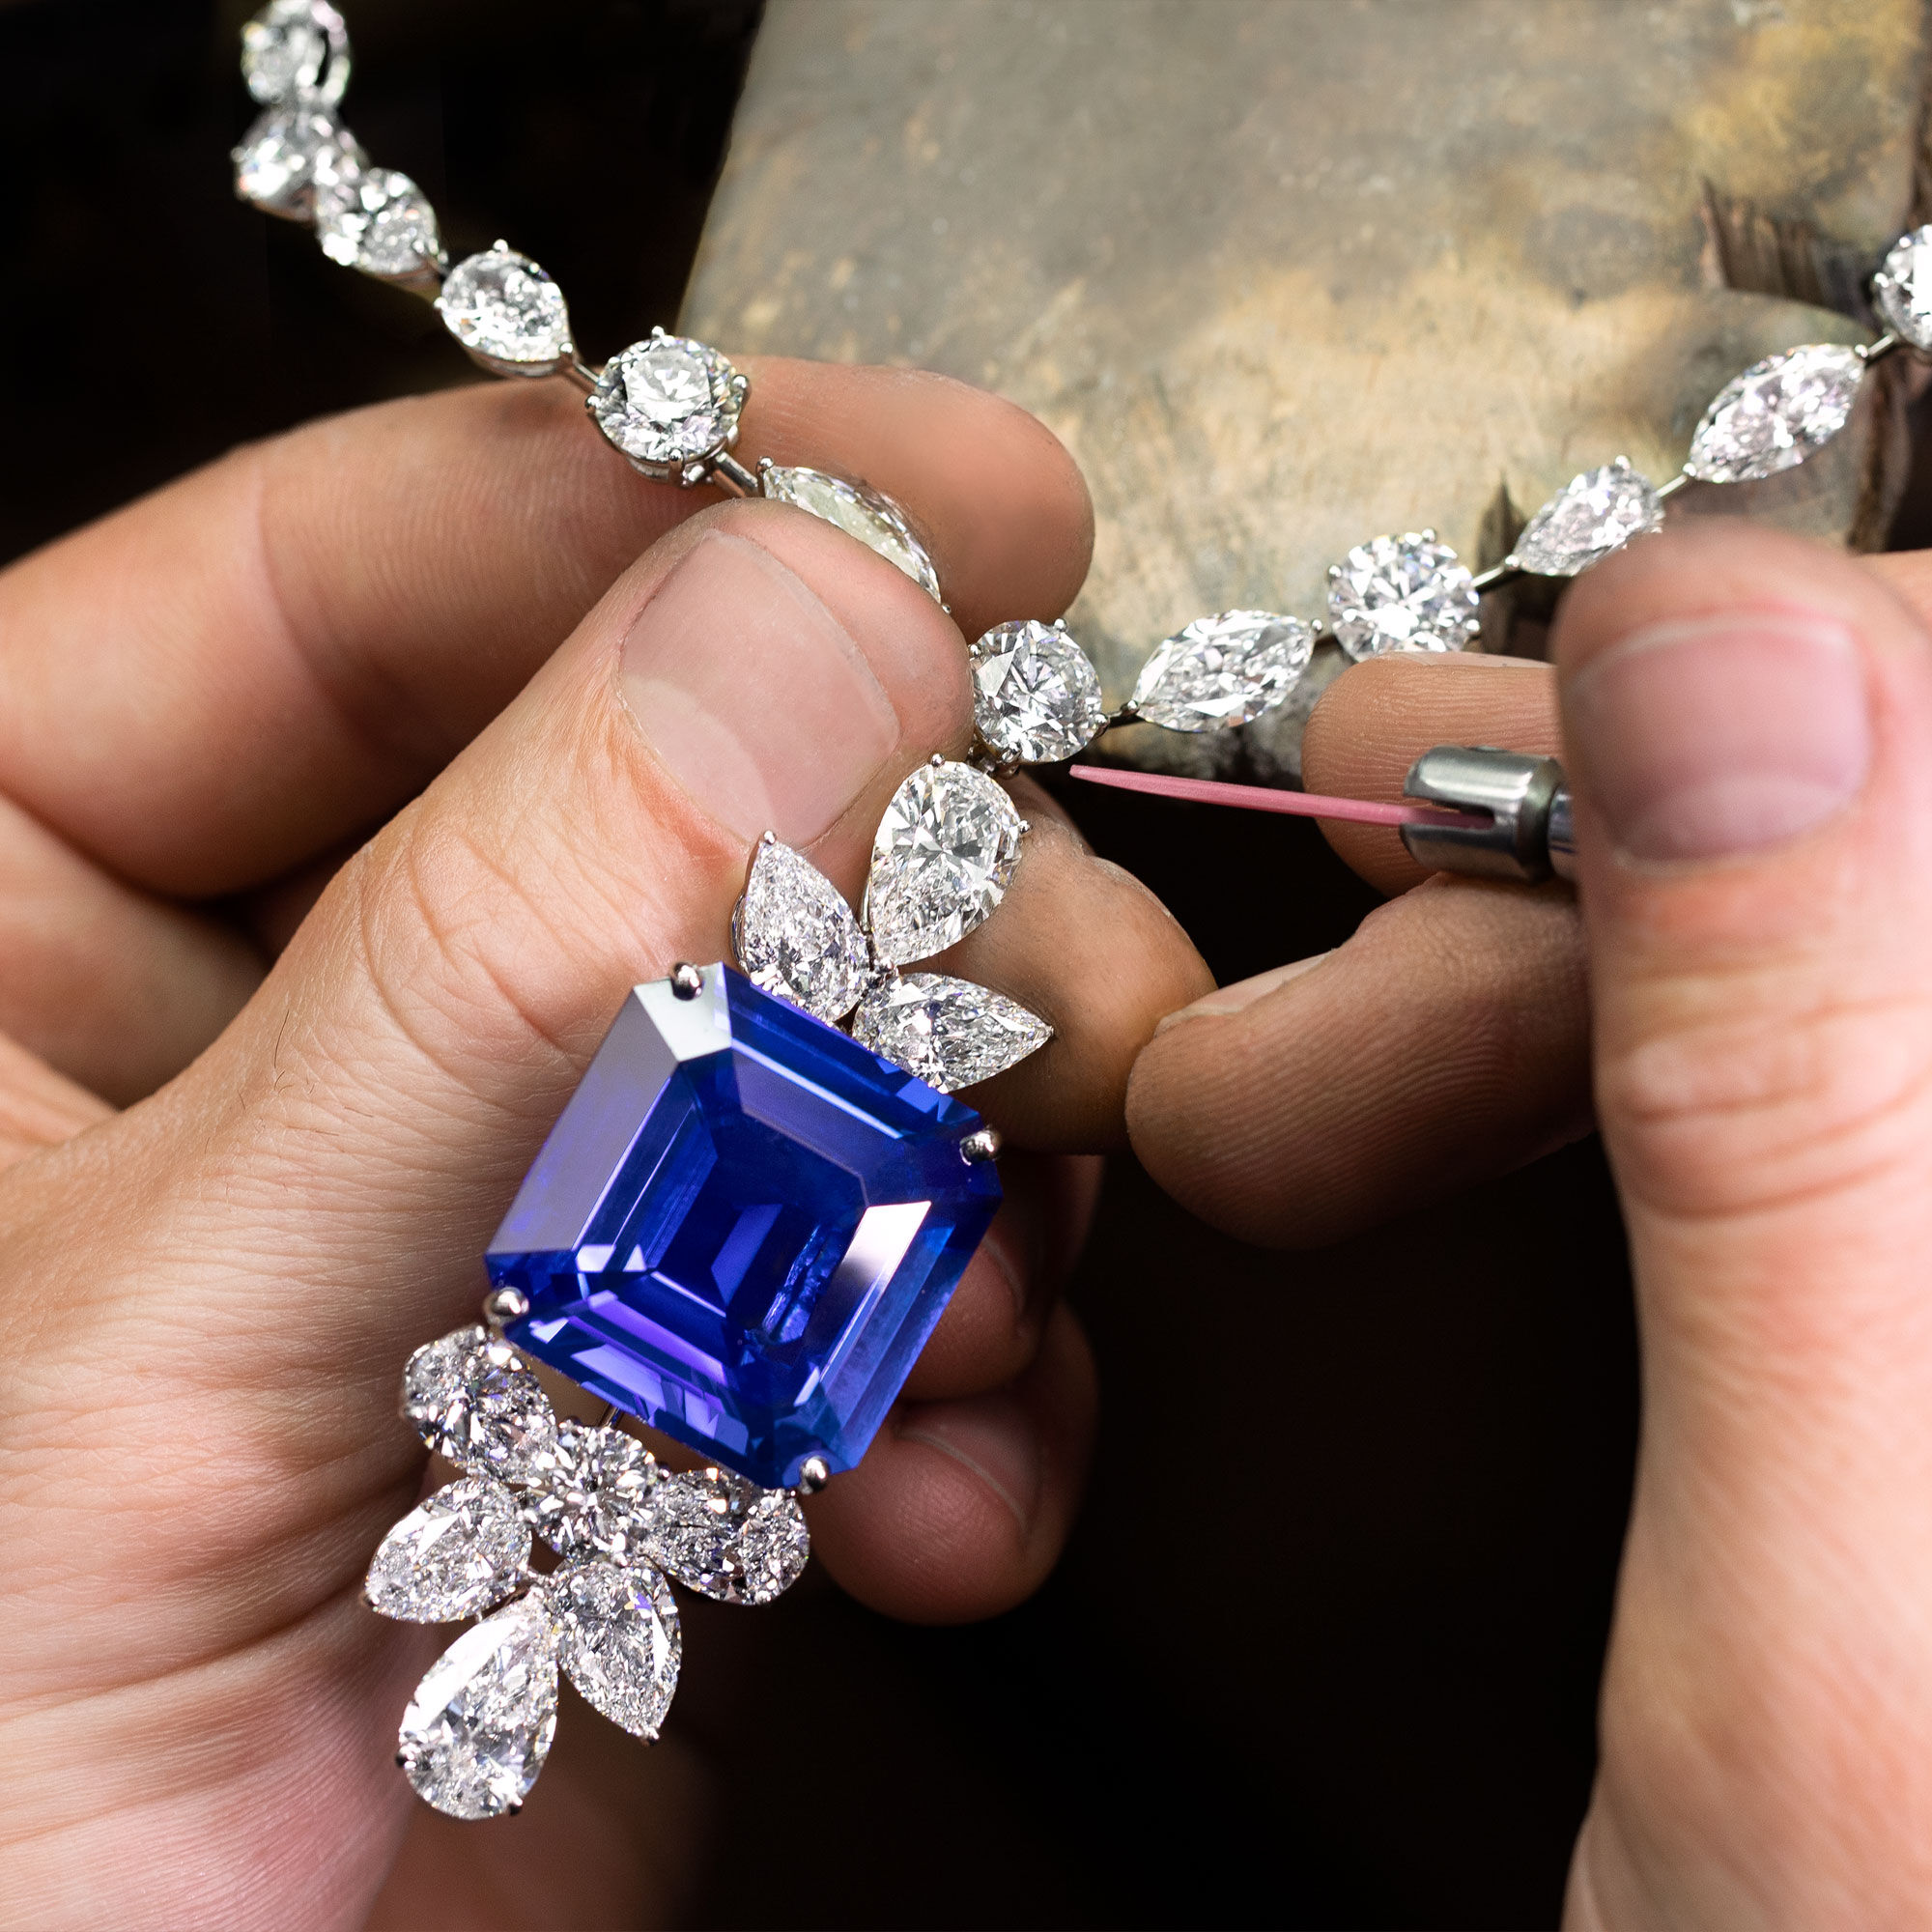 A Graff craftsman finalising a sapphire and diamond necklace in the workshop